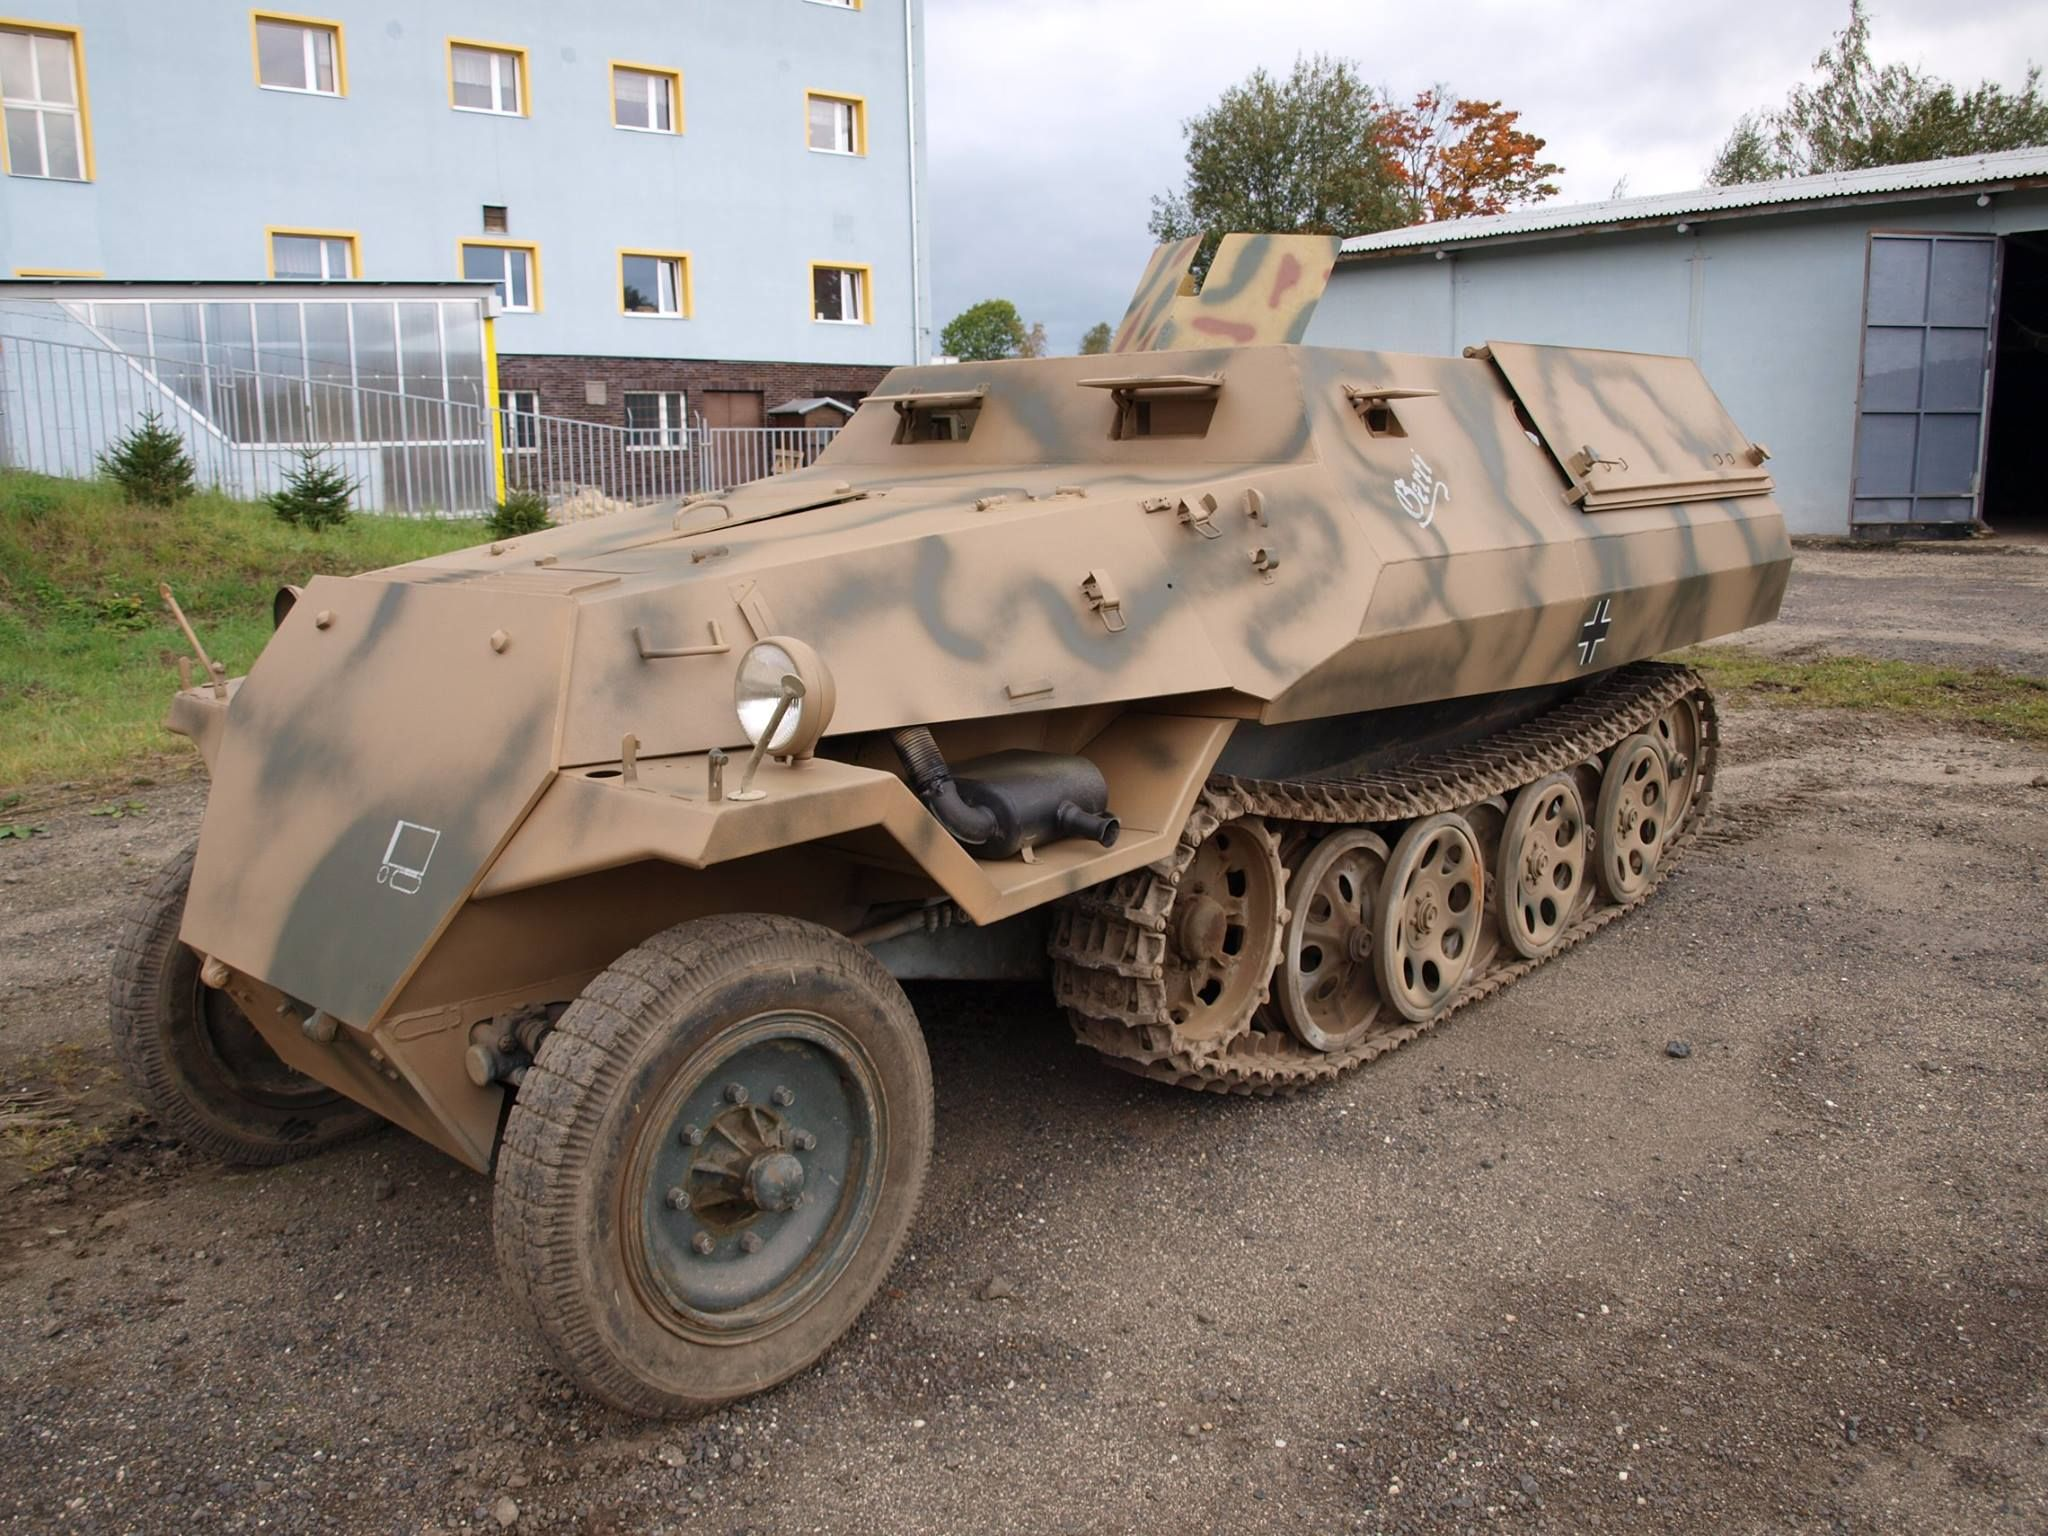 The museum of military vehicles smrzovka offers 1 sdkfz 251 d replica fully restored running condition with tatra engine and 4 vehicles